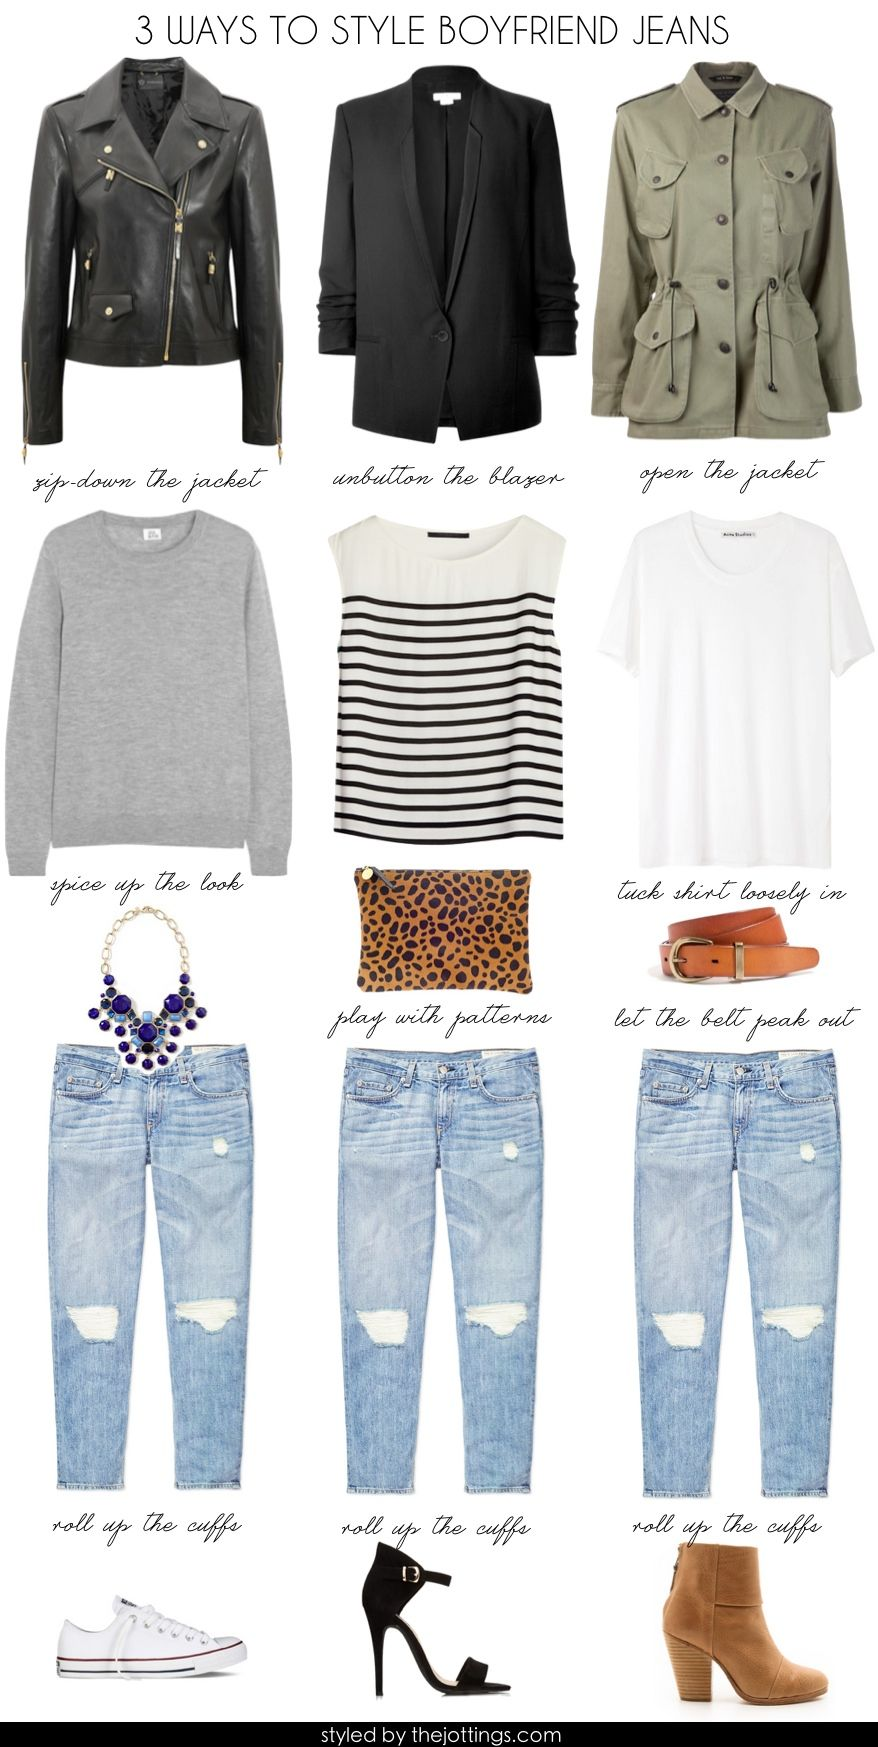 How to style boyfriend jeans. They forgot two more top options and shoe  options  feminine blouse with flats or peplum top with sandals. d9f726e62a36